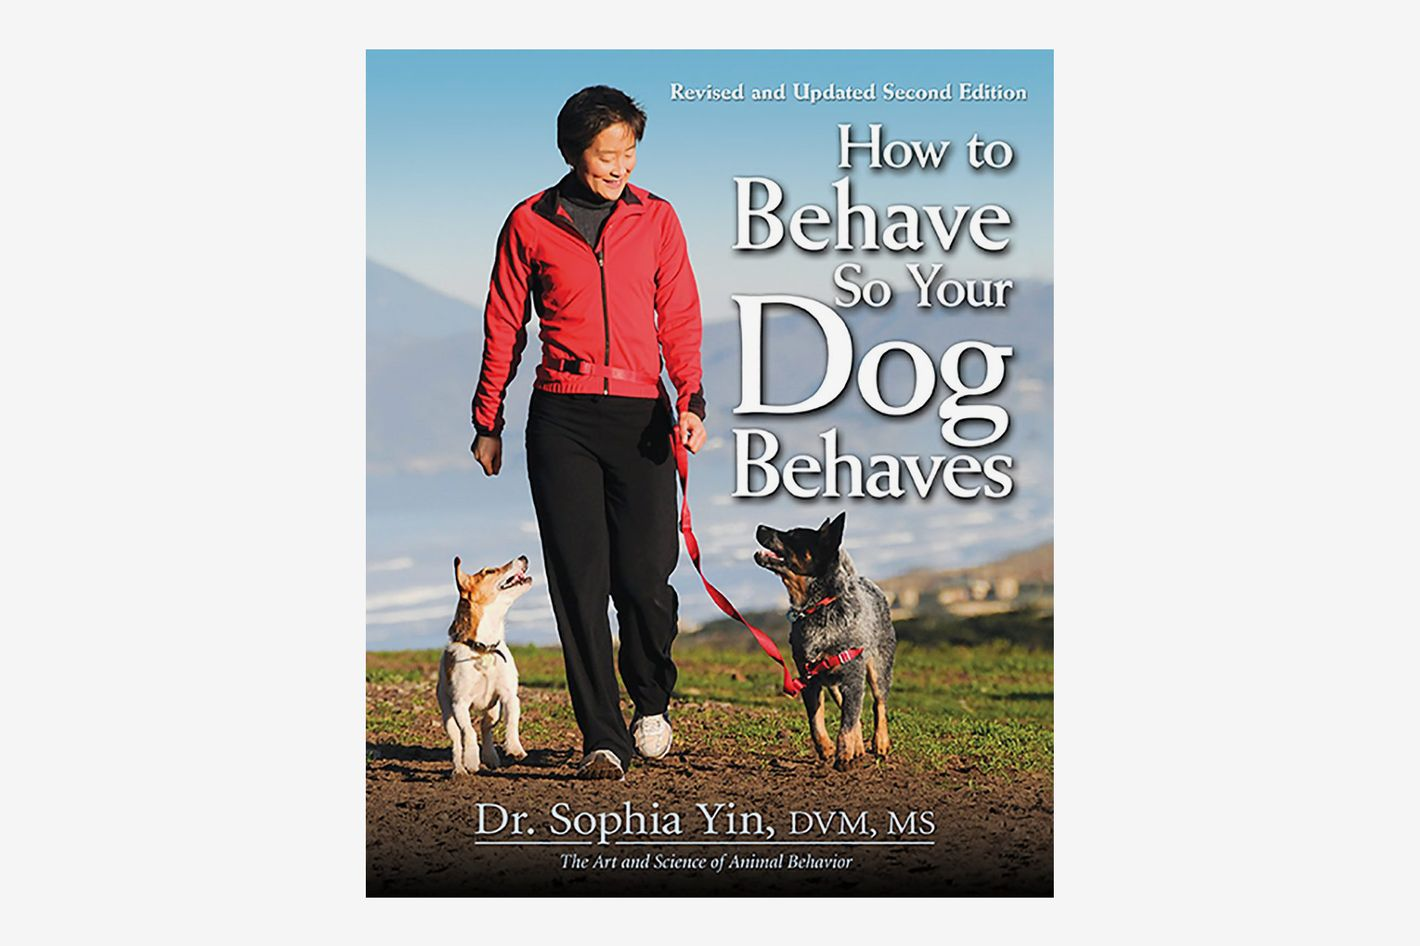 <em>How to Behave So Your Dog Behaves</em>, by Dr. Sophia Yin